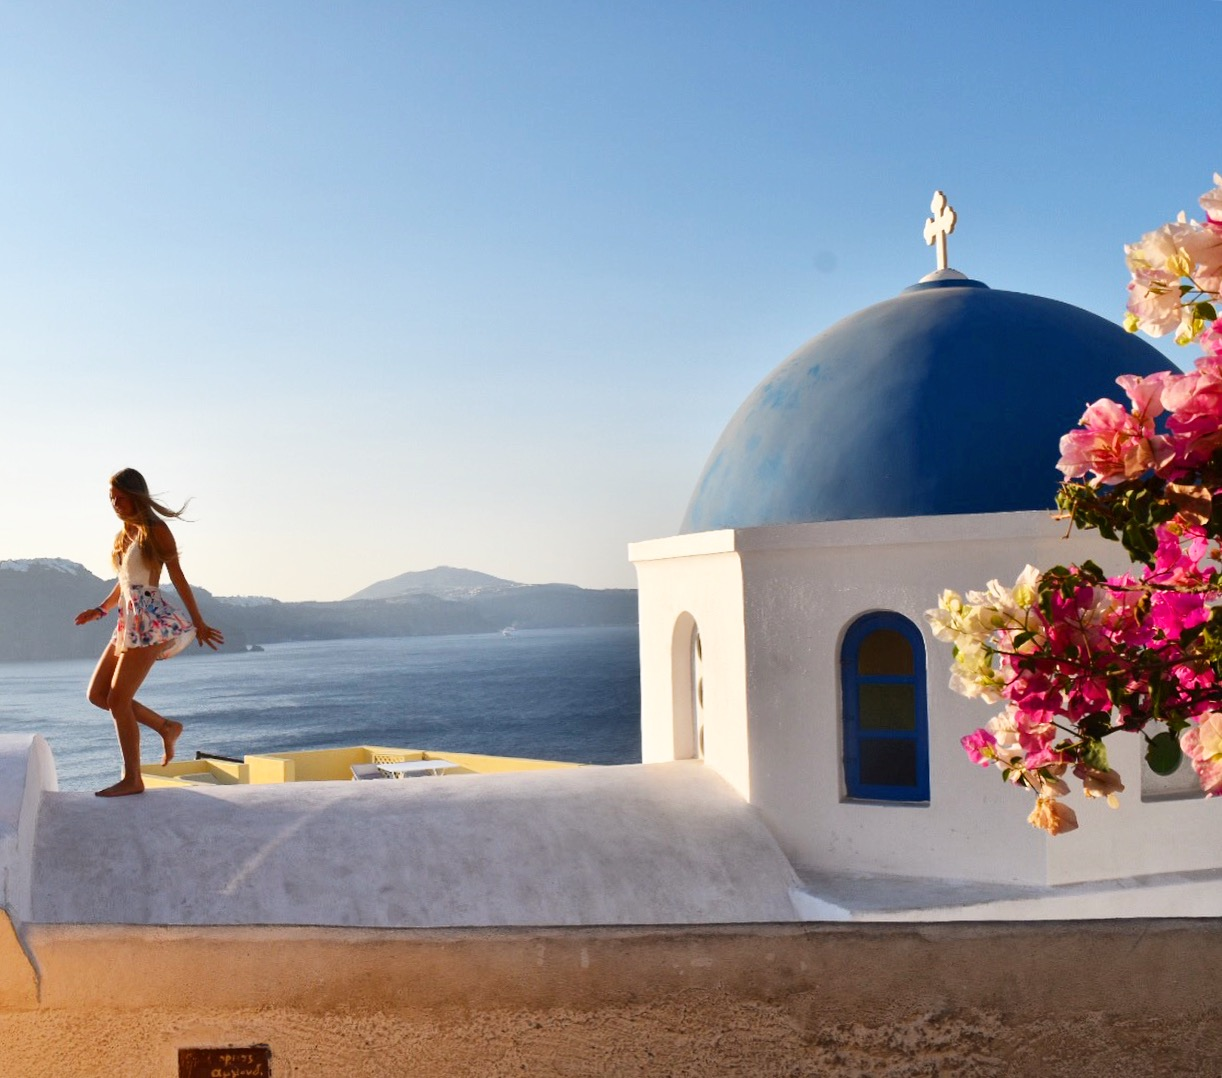 Santorini Greece Sarah Latham running across blue domed churches in Oia Santorini at Sunrise